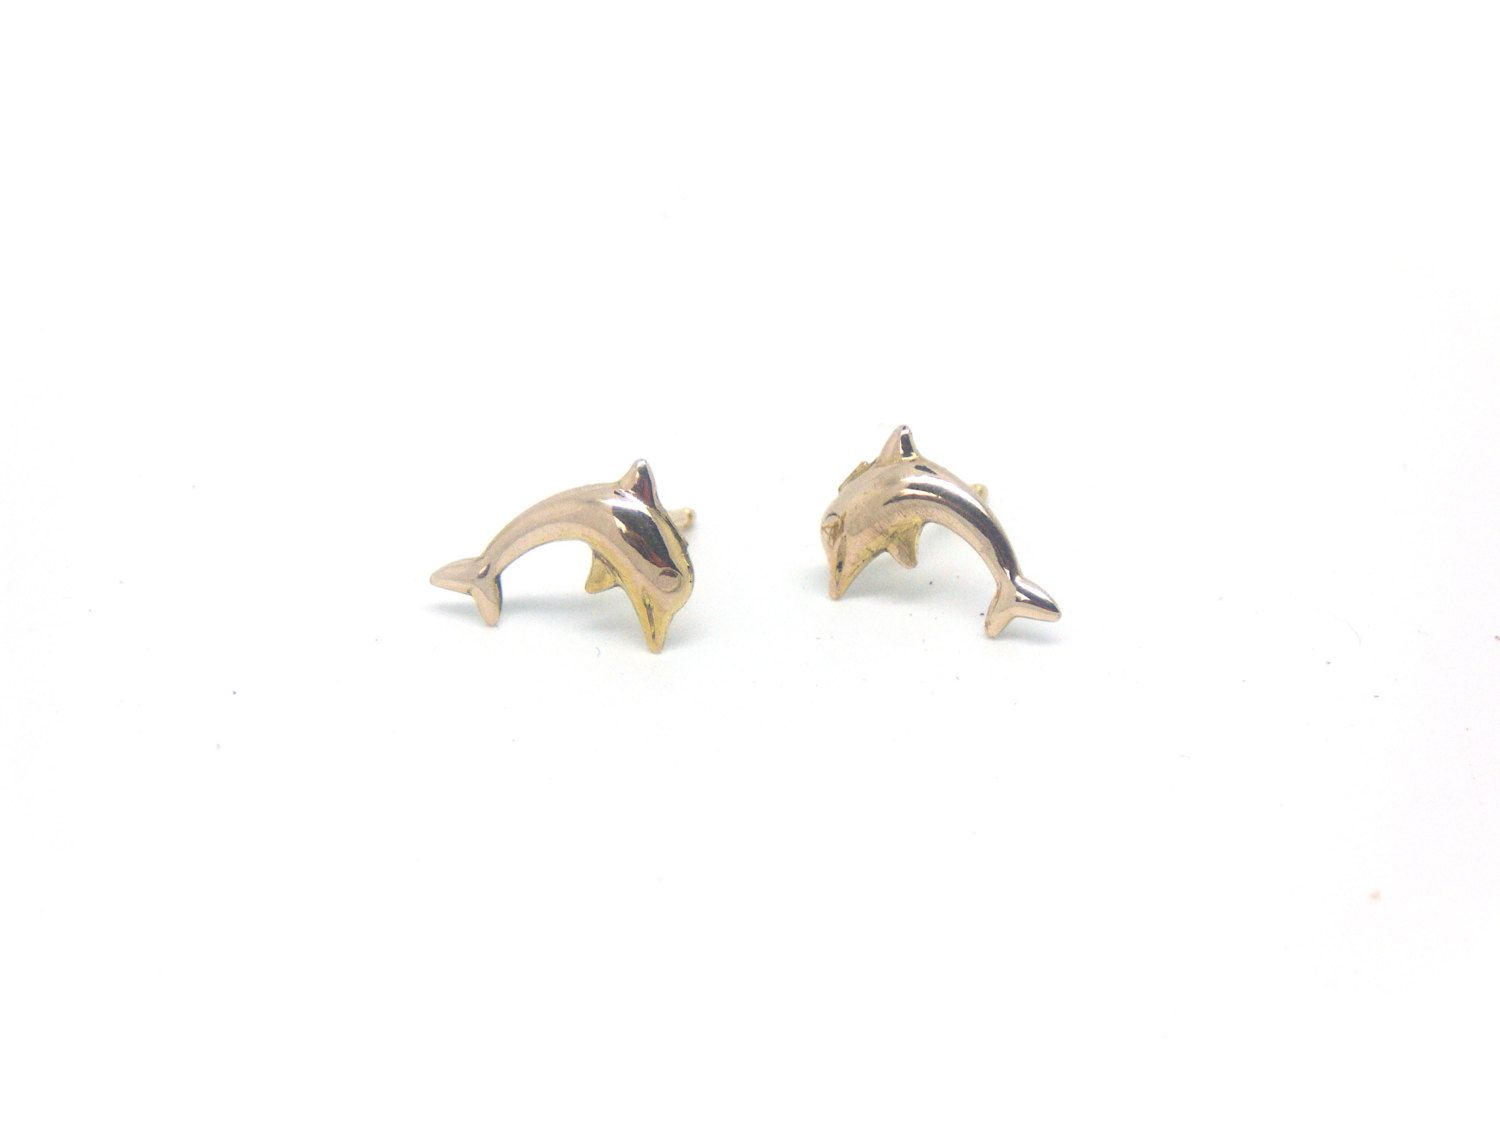 Dolphin earrings  14k gold studs  Gold dolphin earrings  Minimalist jewelry  Yellow gold dolphins  Nautical jewelry  Gift for her (59.00 GBP) by OhJewelery